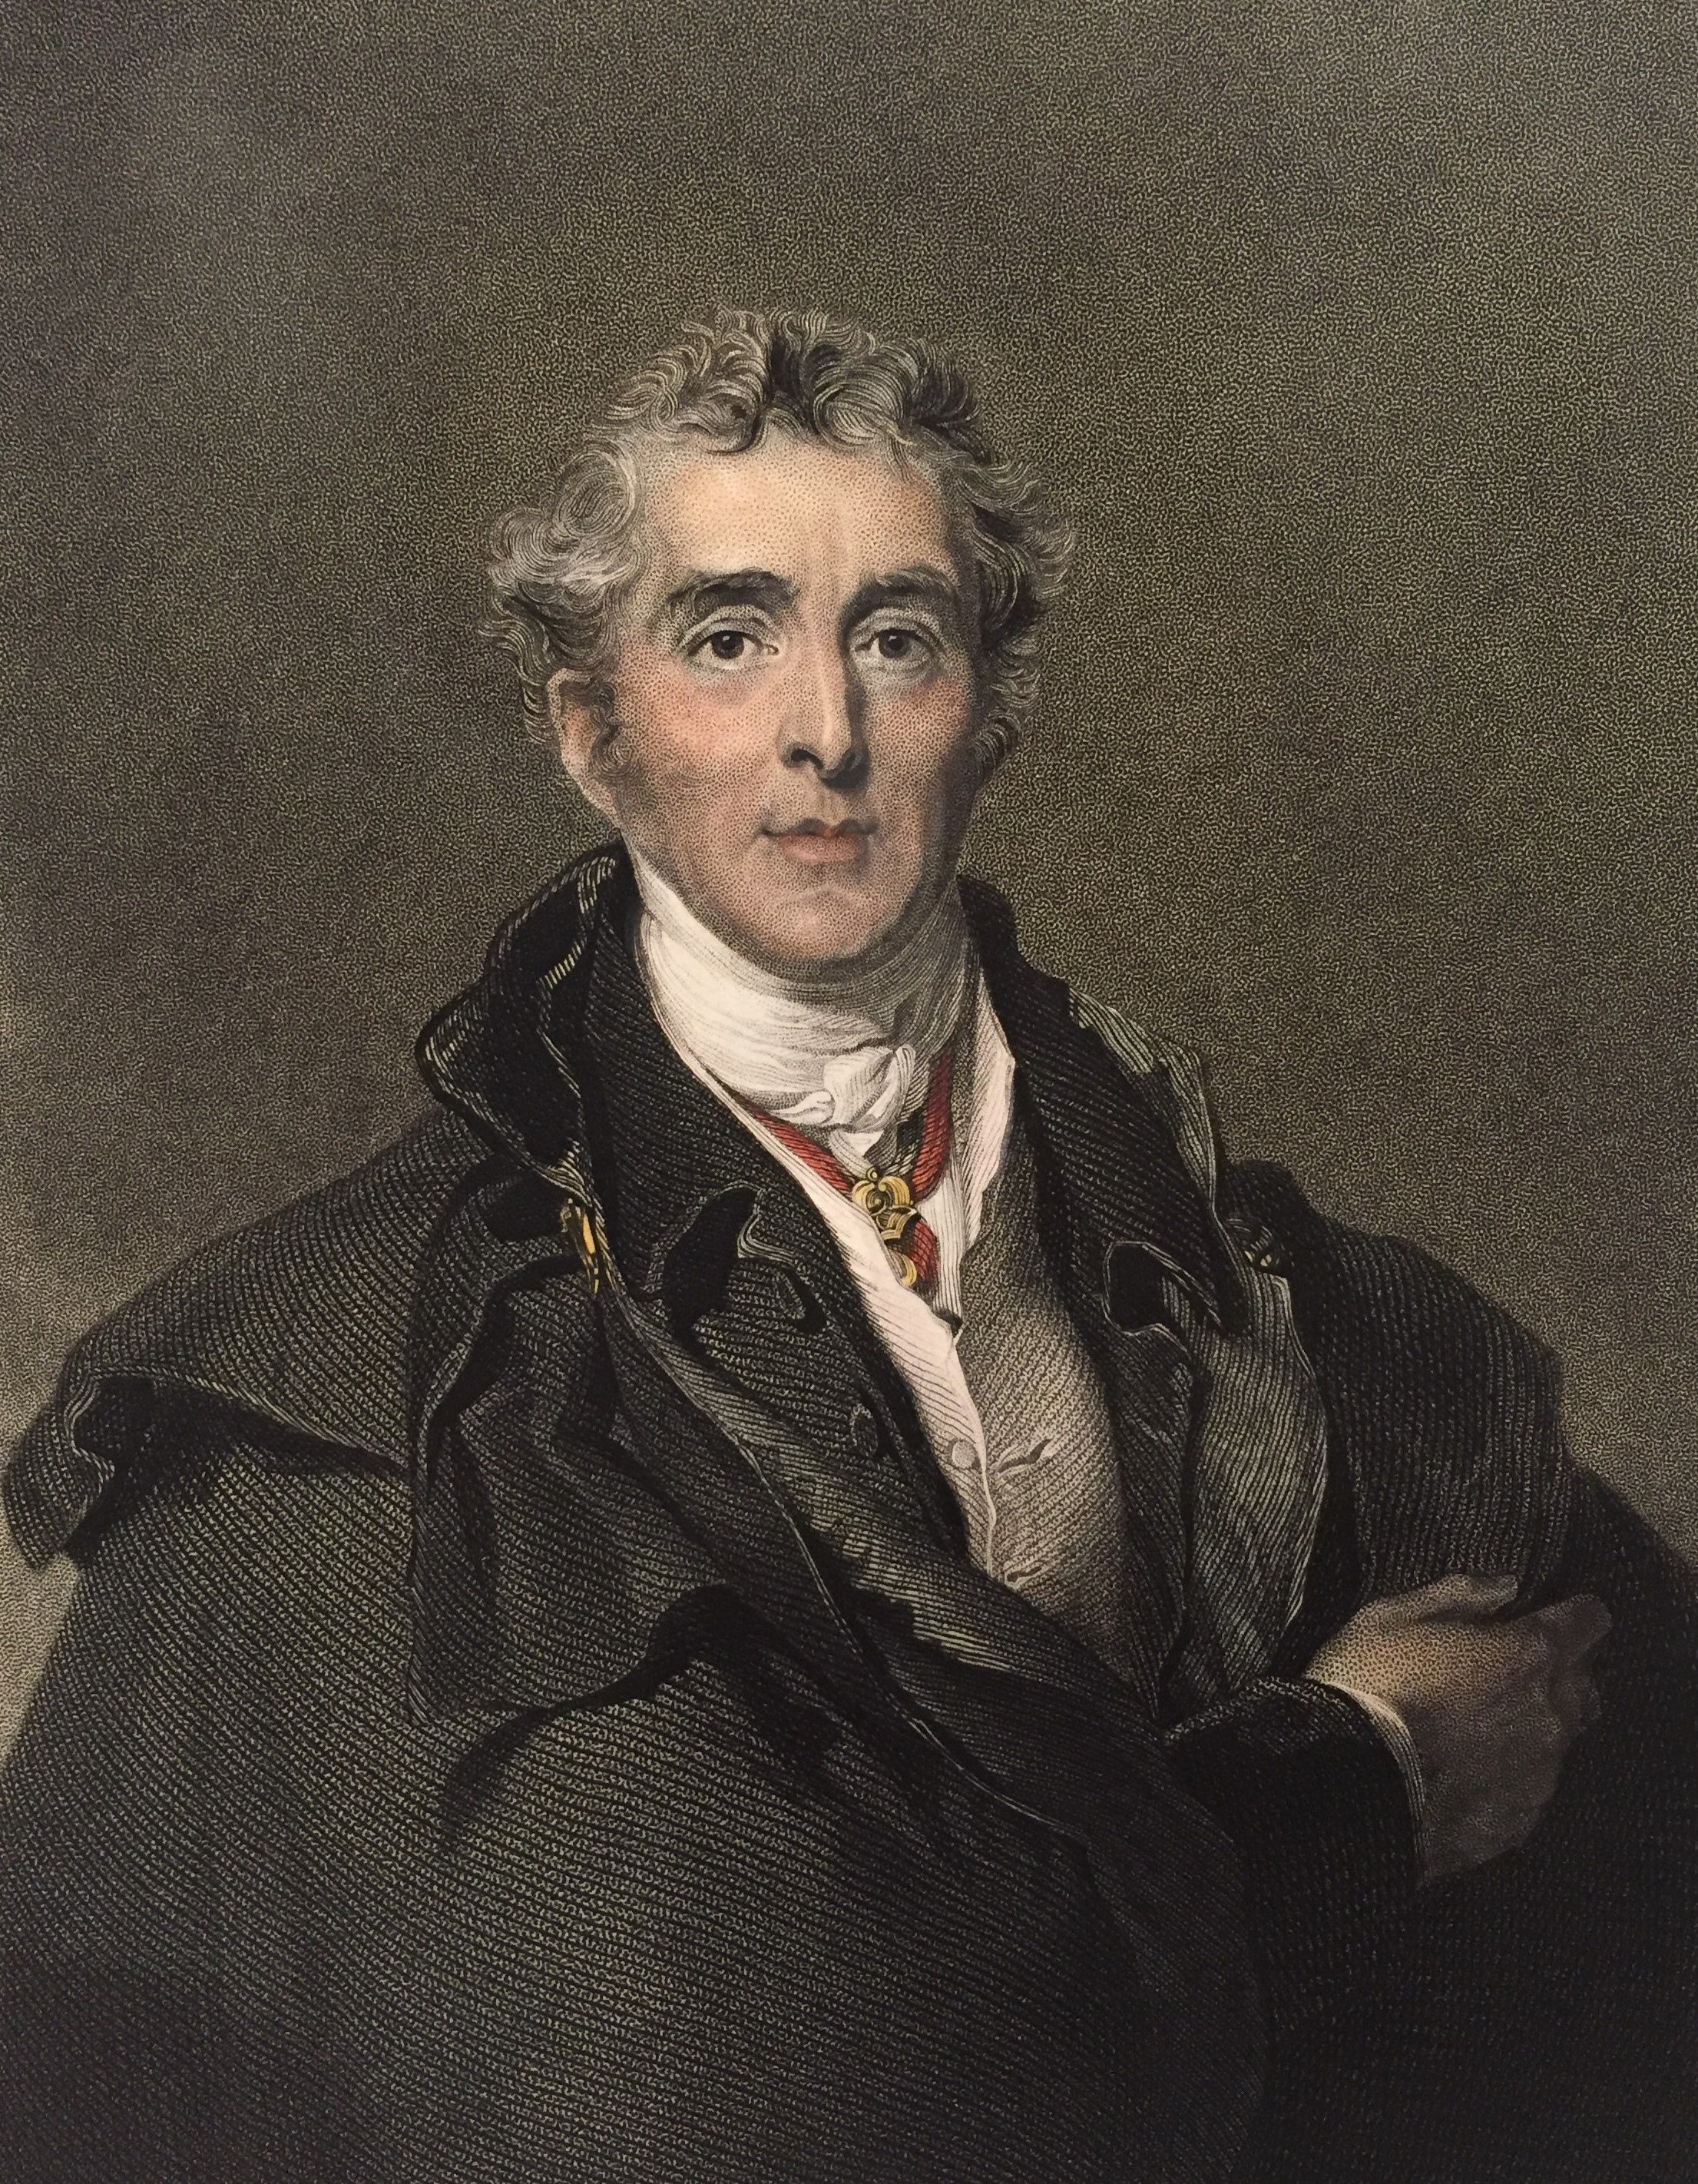 Figure 1 – The Duke of Wellington, an opponent of issuing the Military General Service Medal. Image from author's archive.